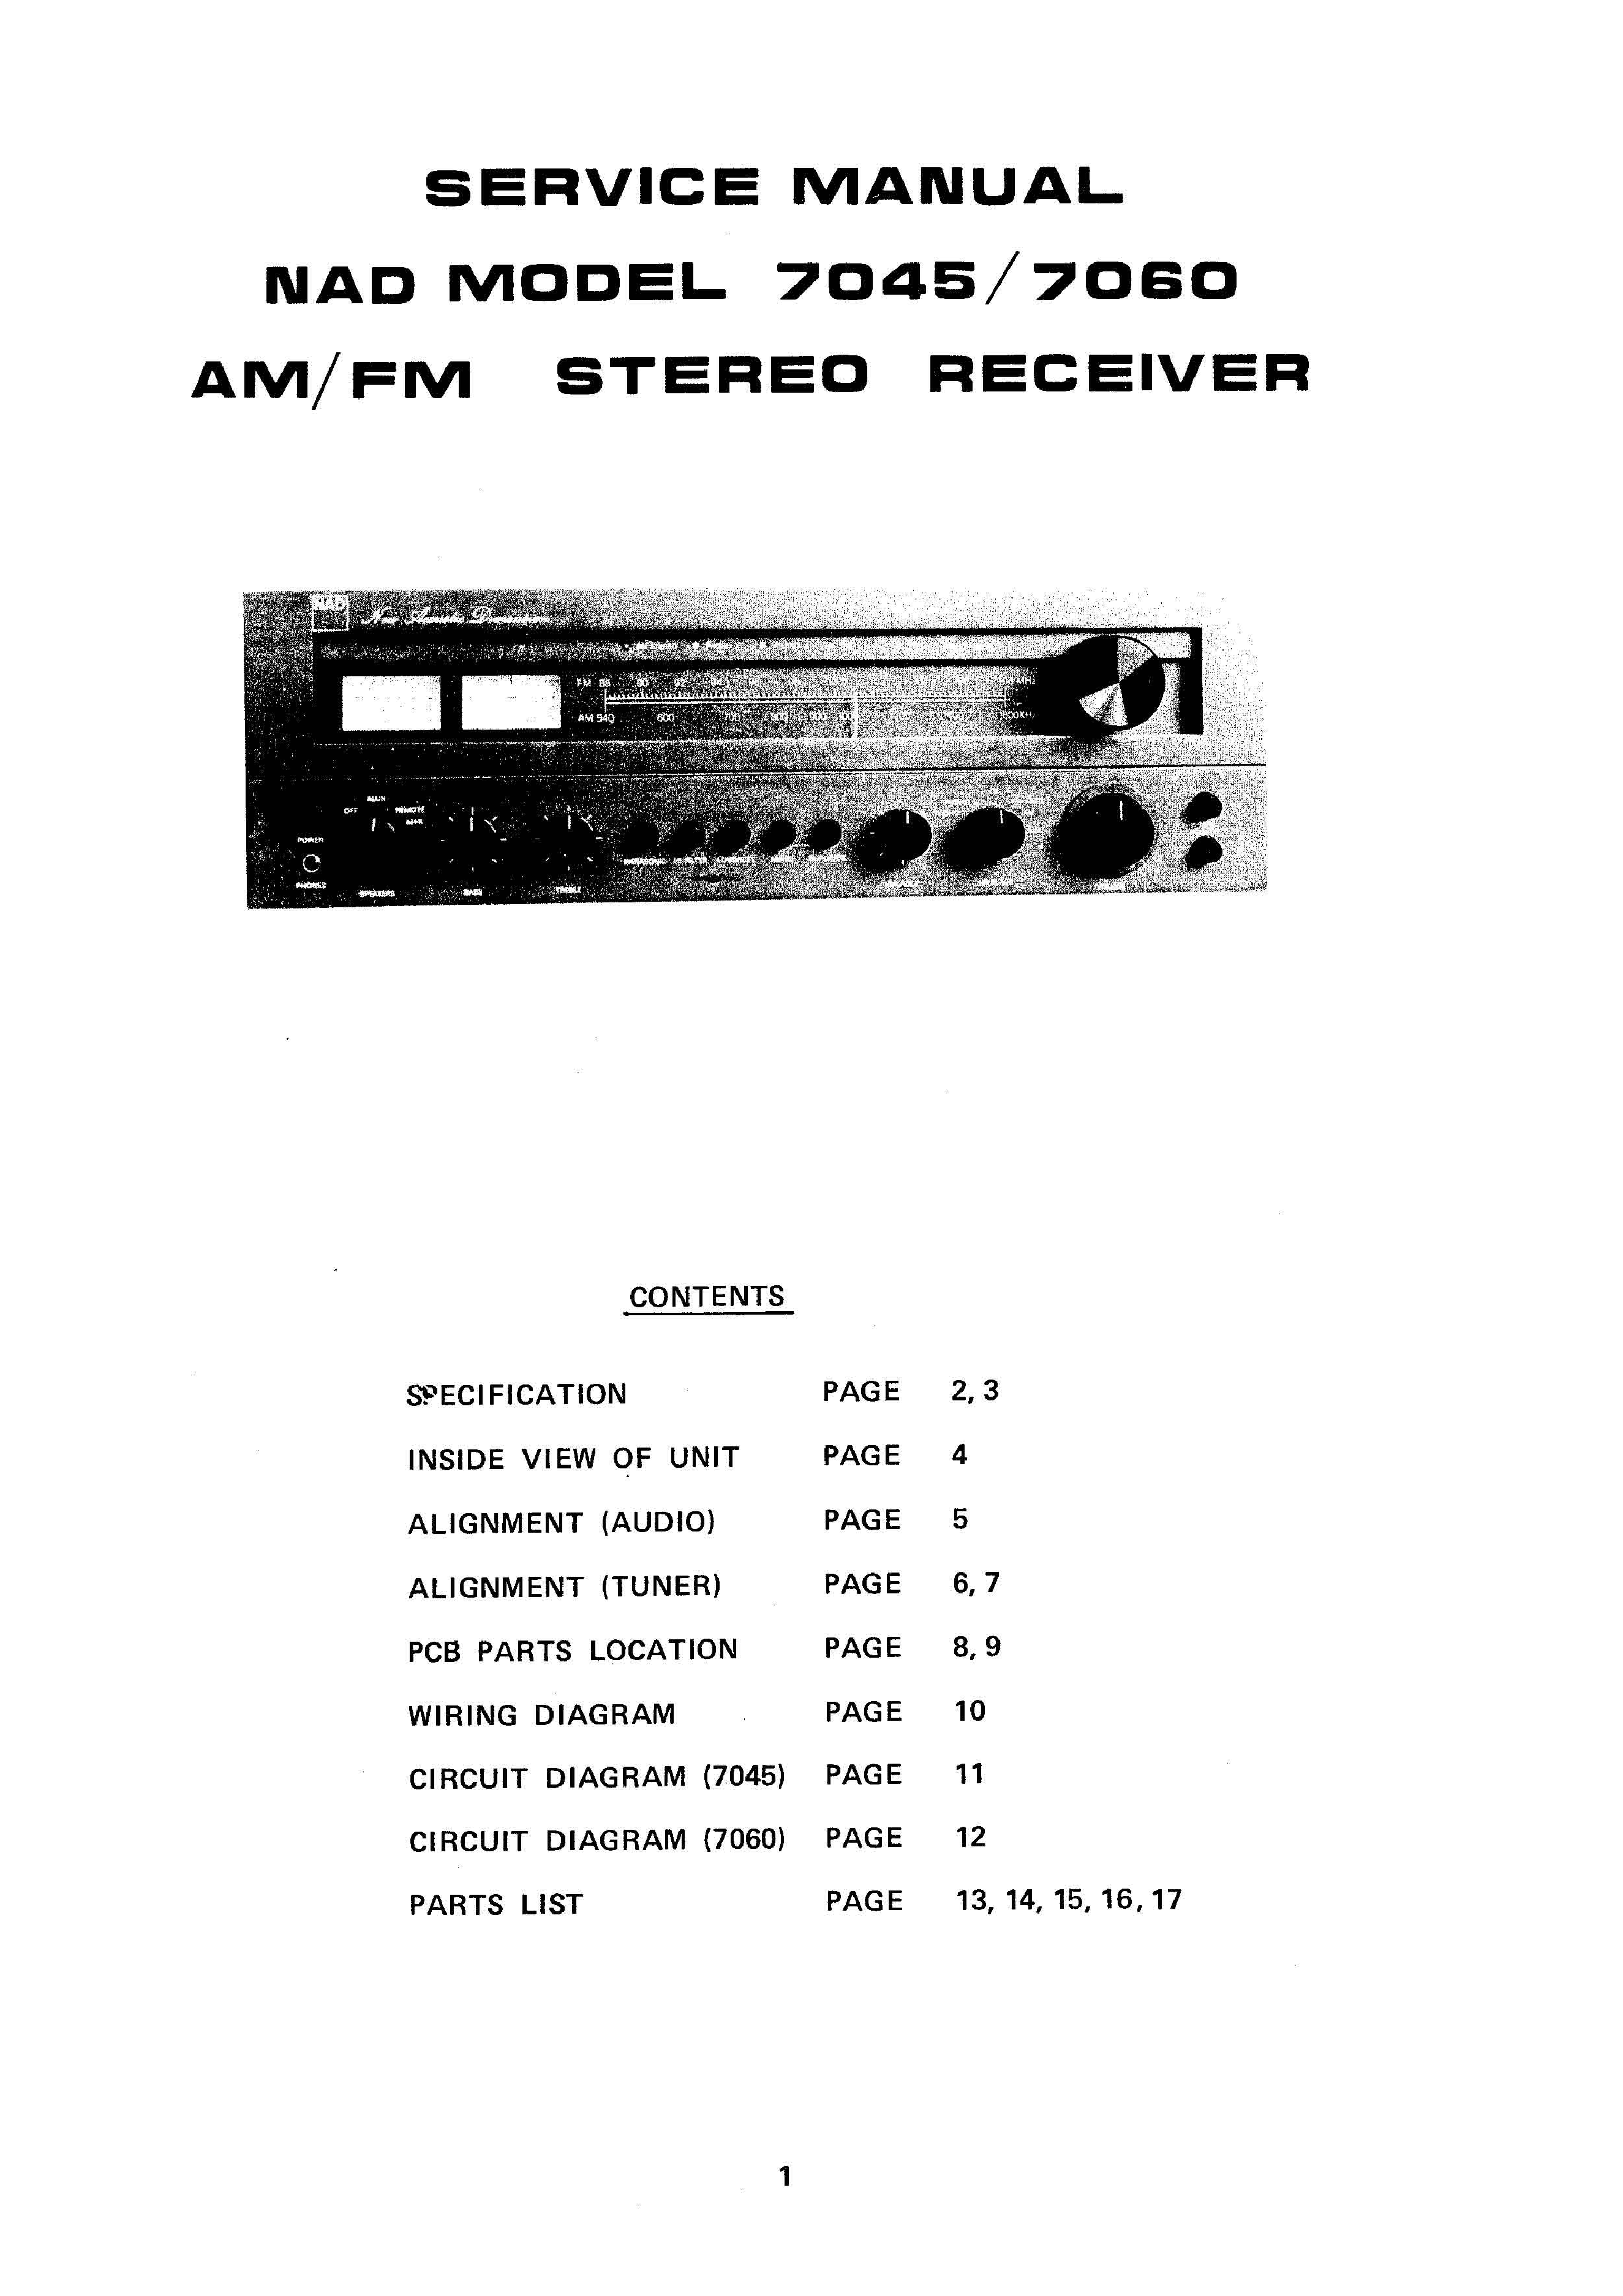 Service Manual For Nad 7060